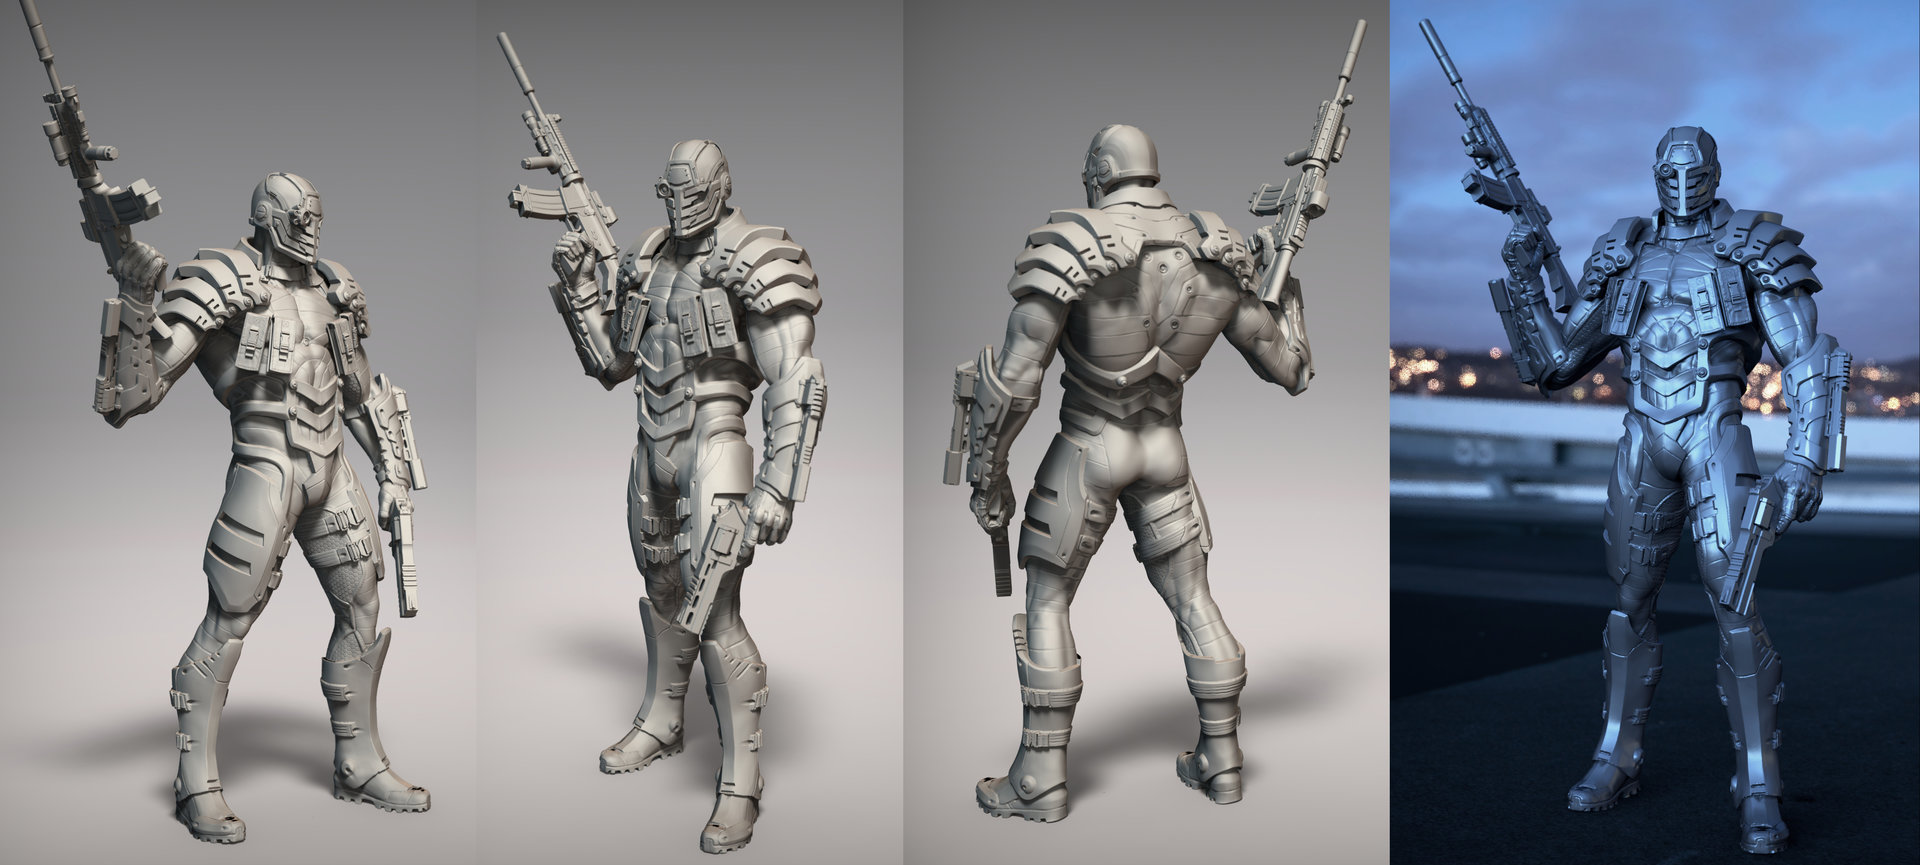 David giraud deadshot wed renders